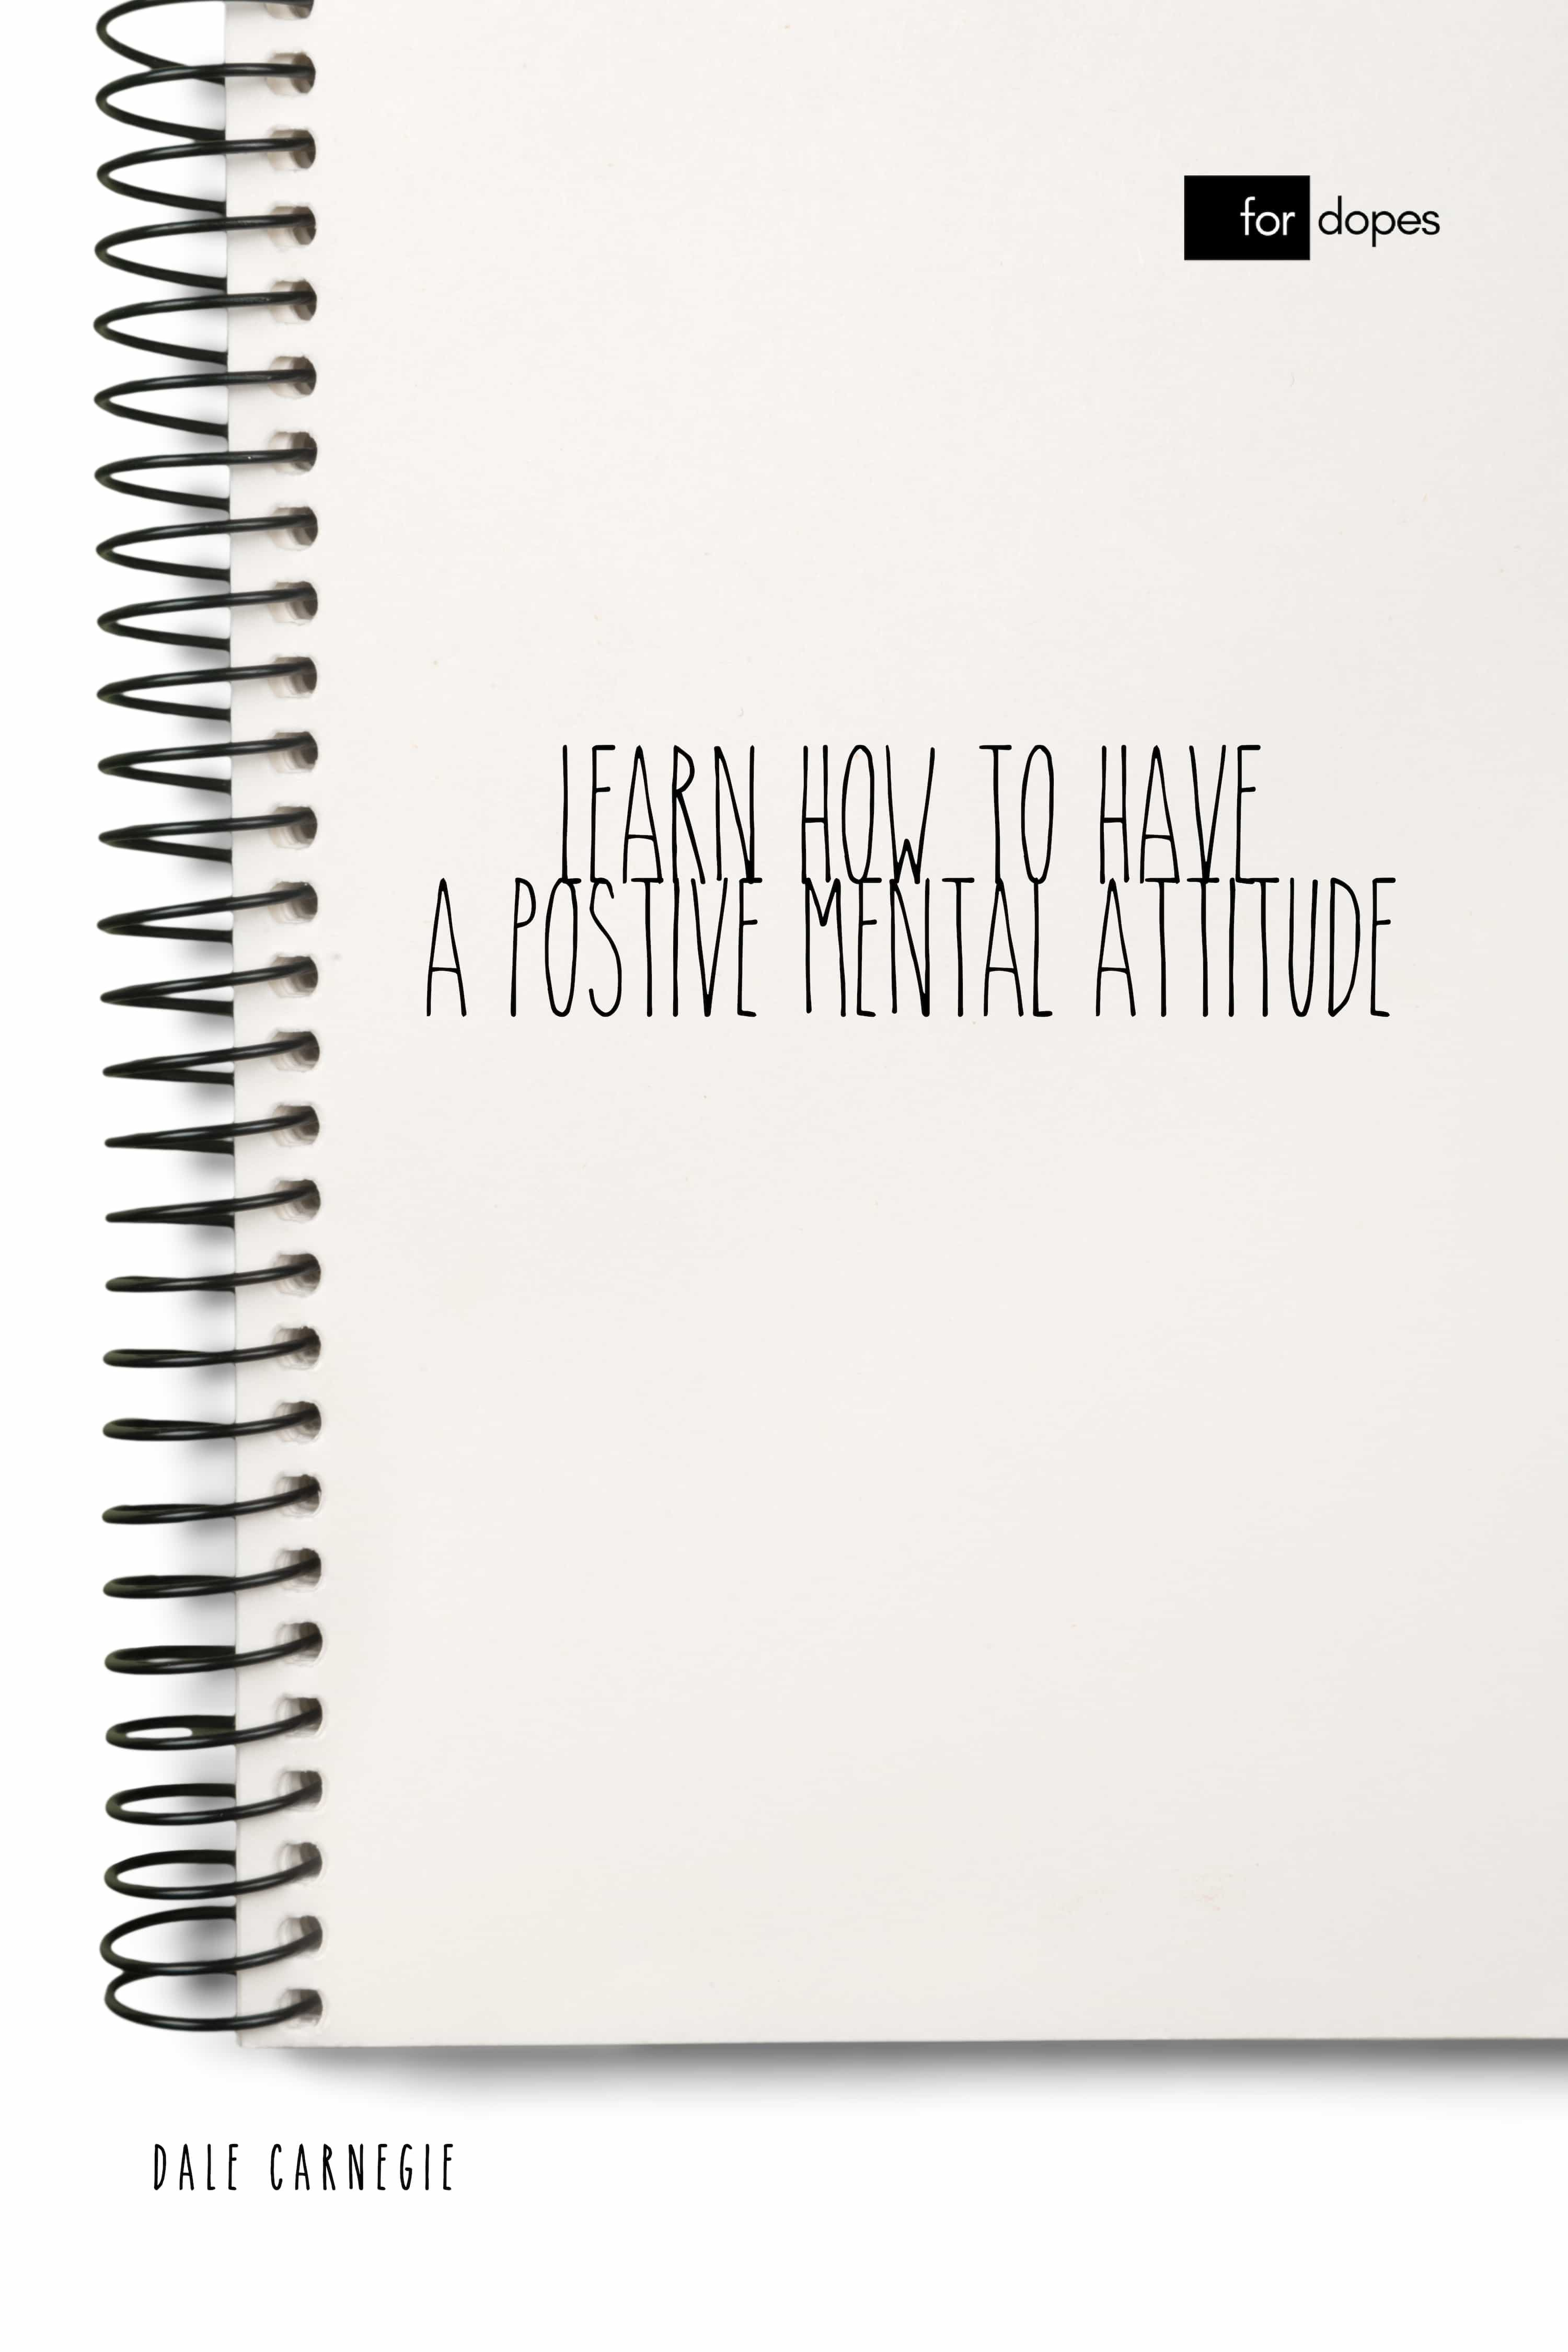 LEARN HOW TO HAVE A POSITIVE MENTAL ATTITUDE